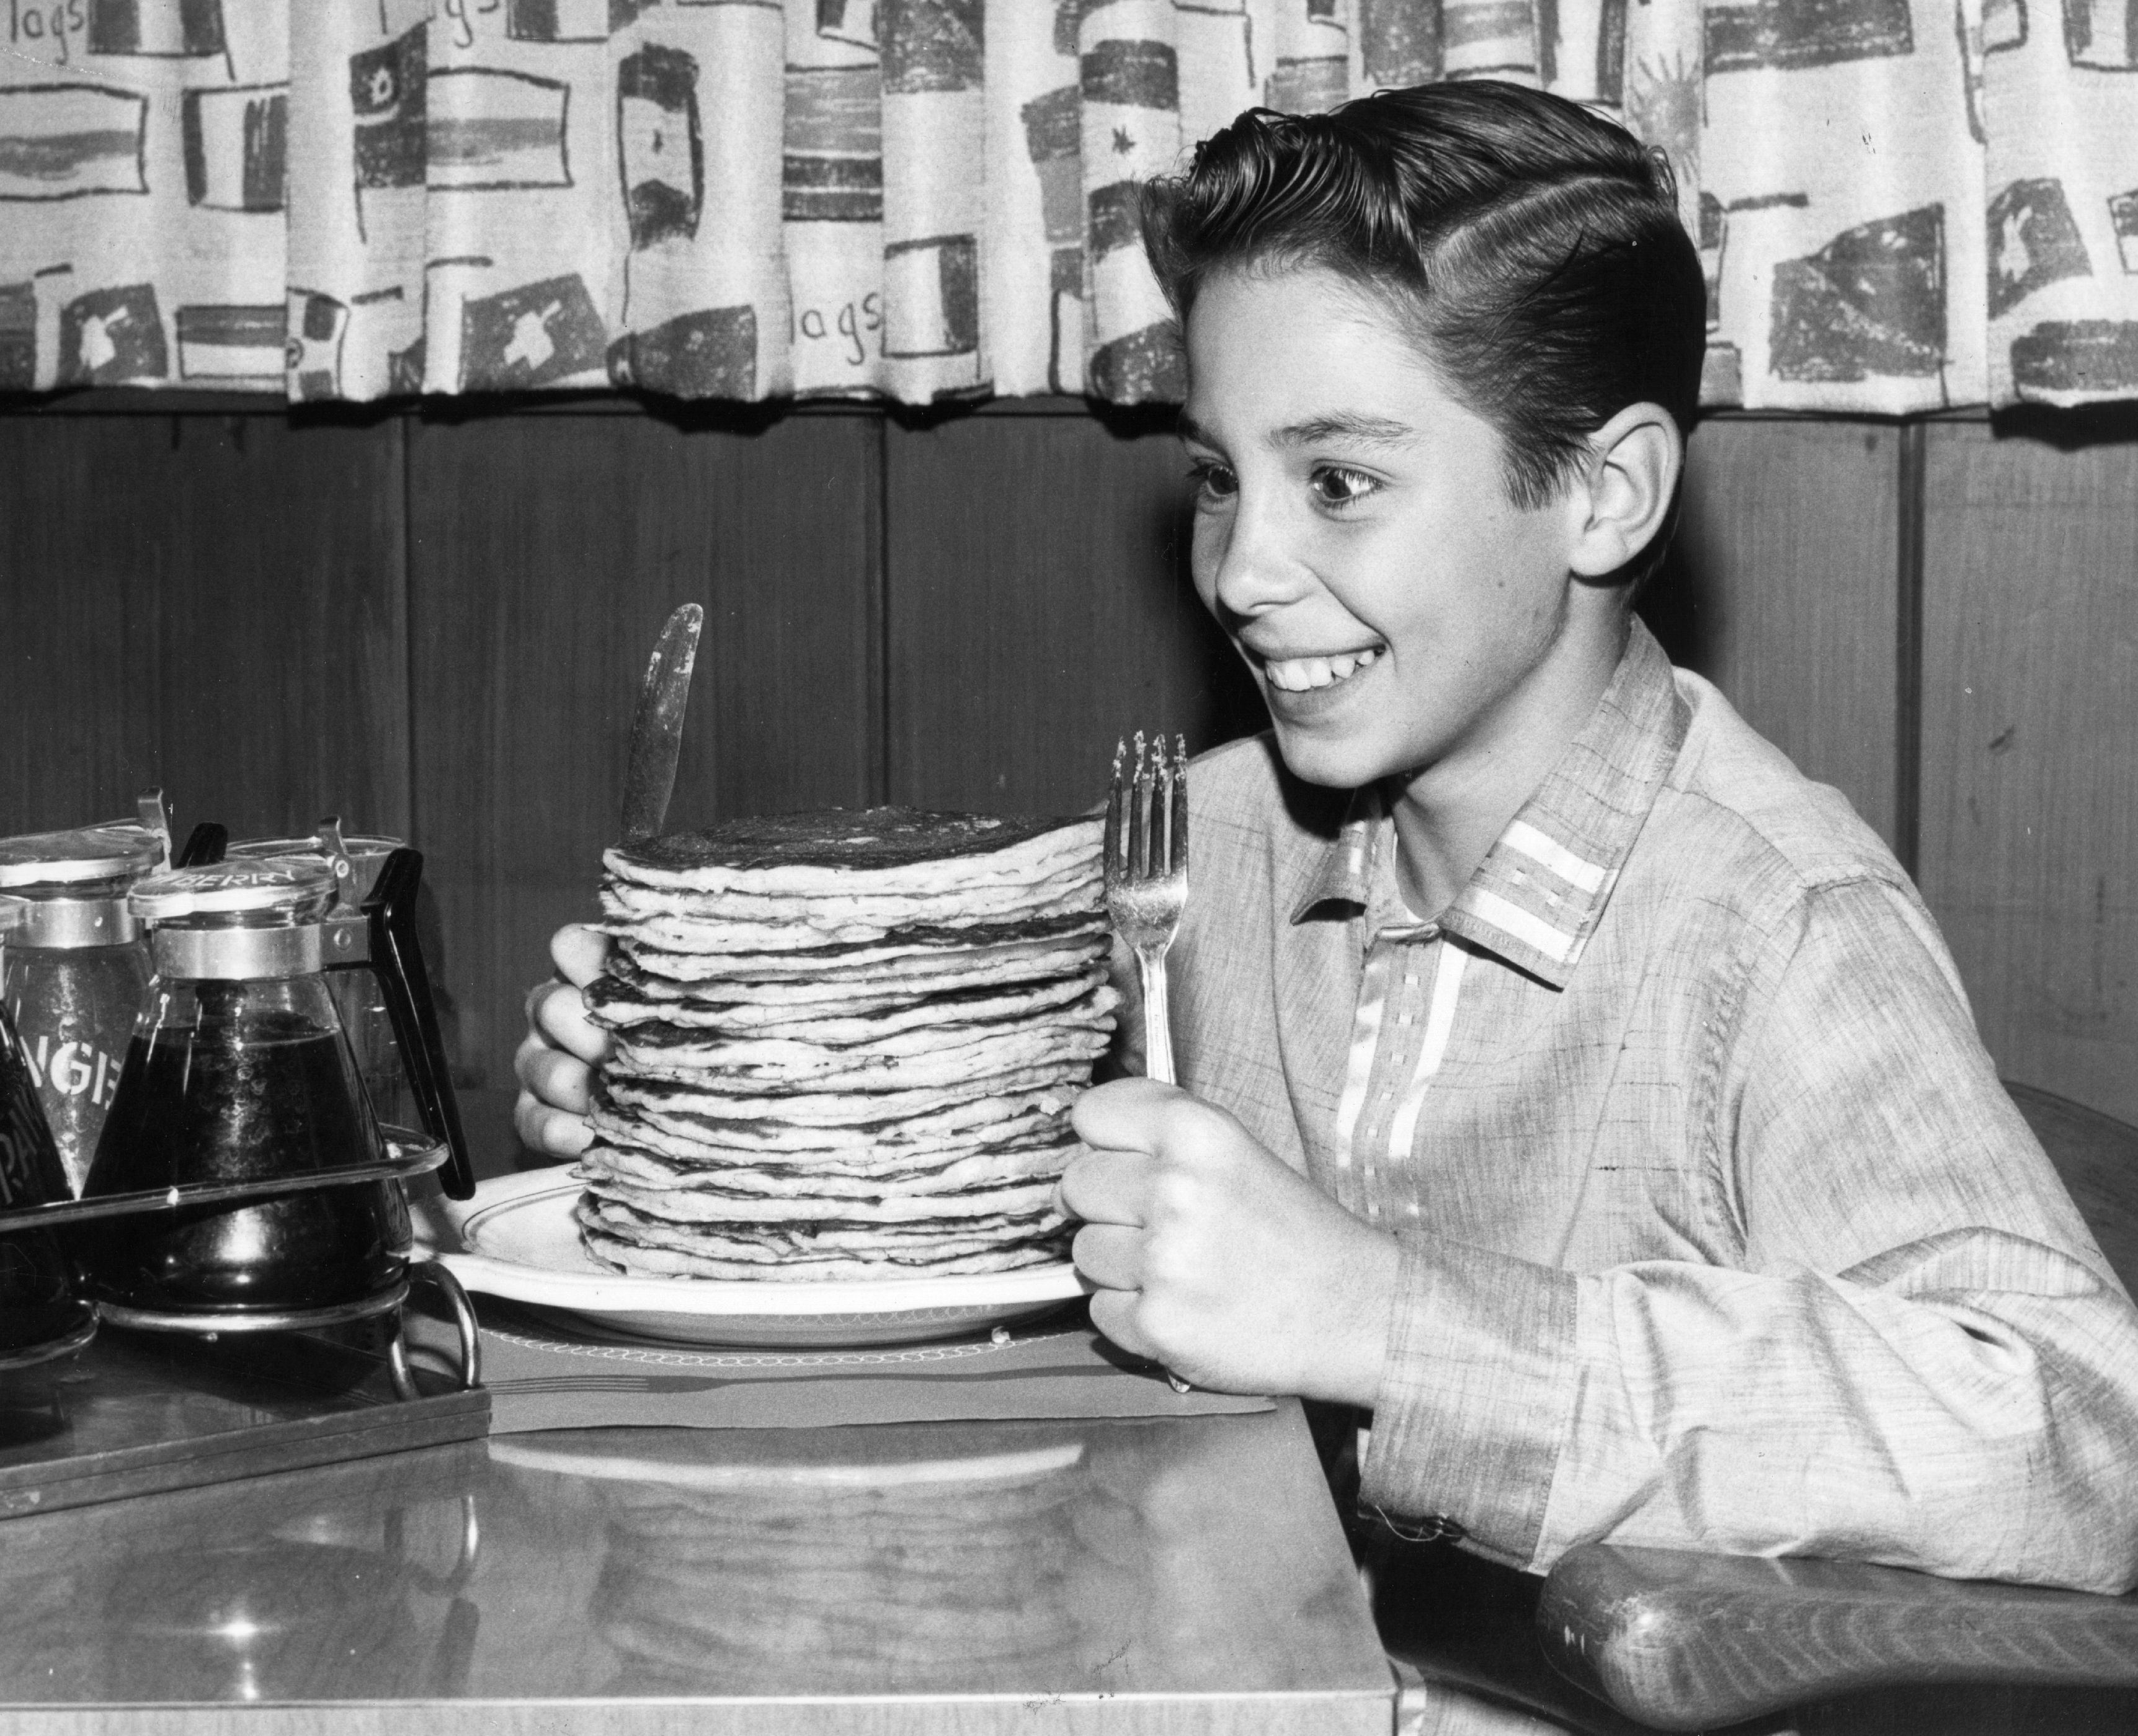 In this file photo, circa 1960, child actor Johnny Crawford looks forward to eating a pile of pancakes in an International House of Pancakes, a chain of eateries in the US started in 1958 by Californian brothers Al and Jerome Lapin.